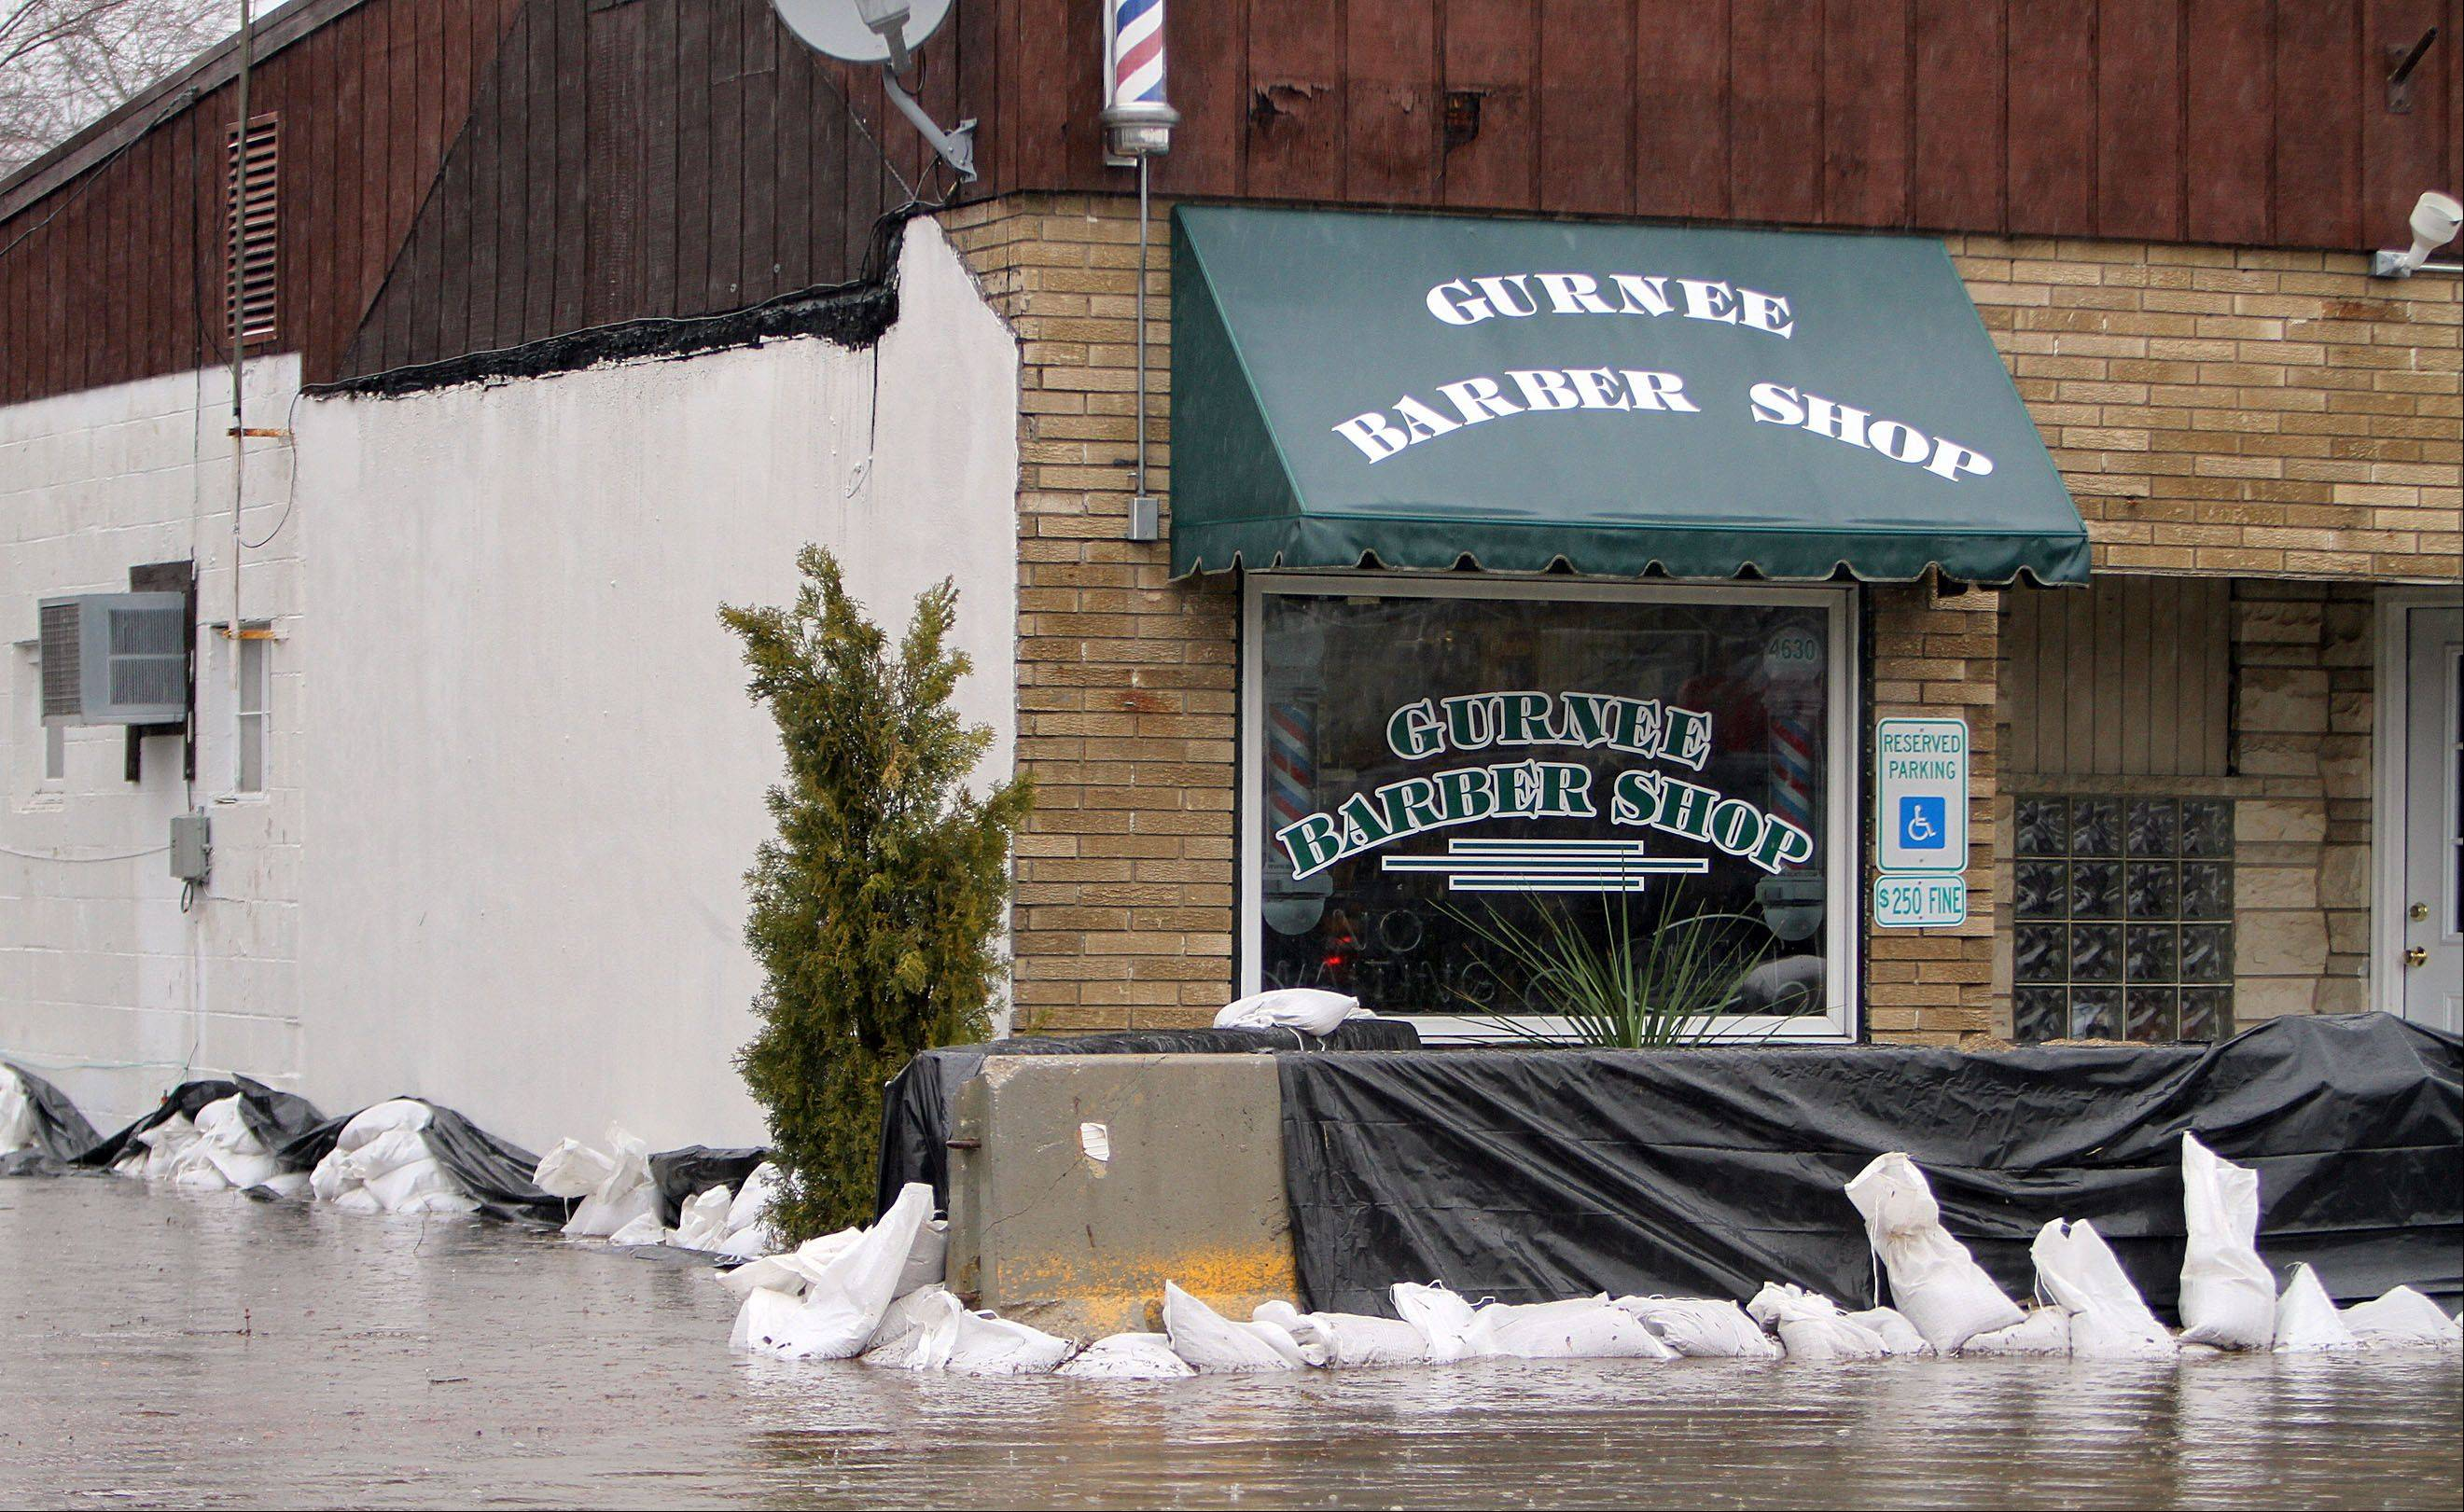 Steve Lundy/slundy@dailyherald.com The Gurnee Barber Shop Old Grand Avenue prepares for flooding in Gurnee Thursday morning.